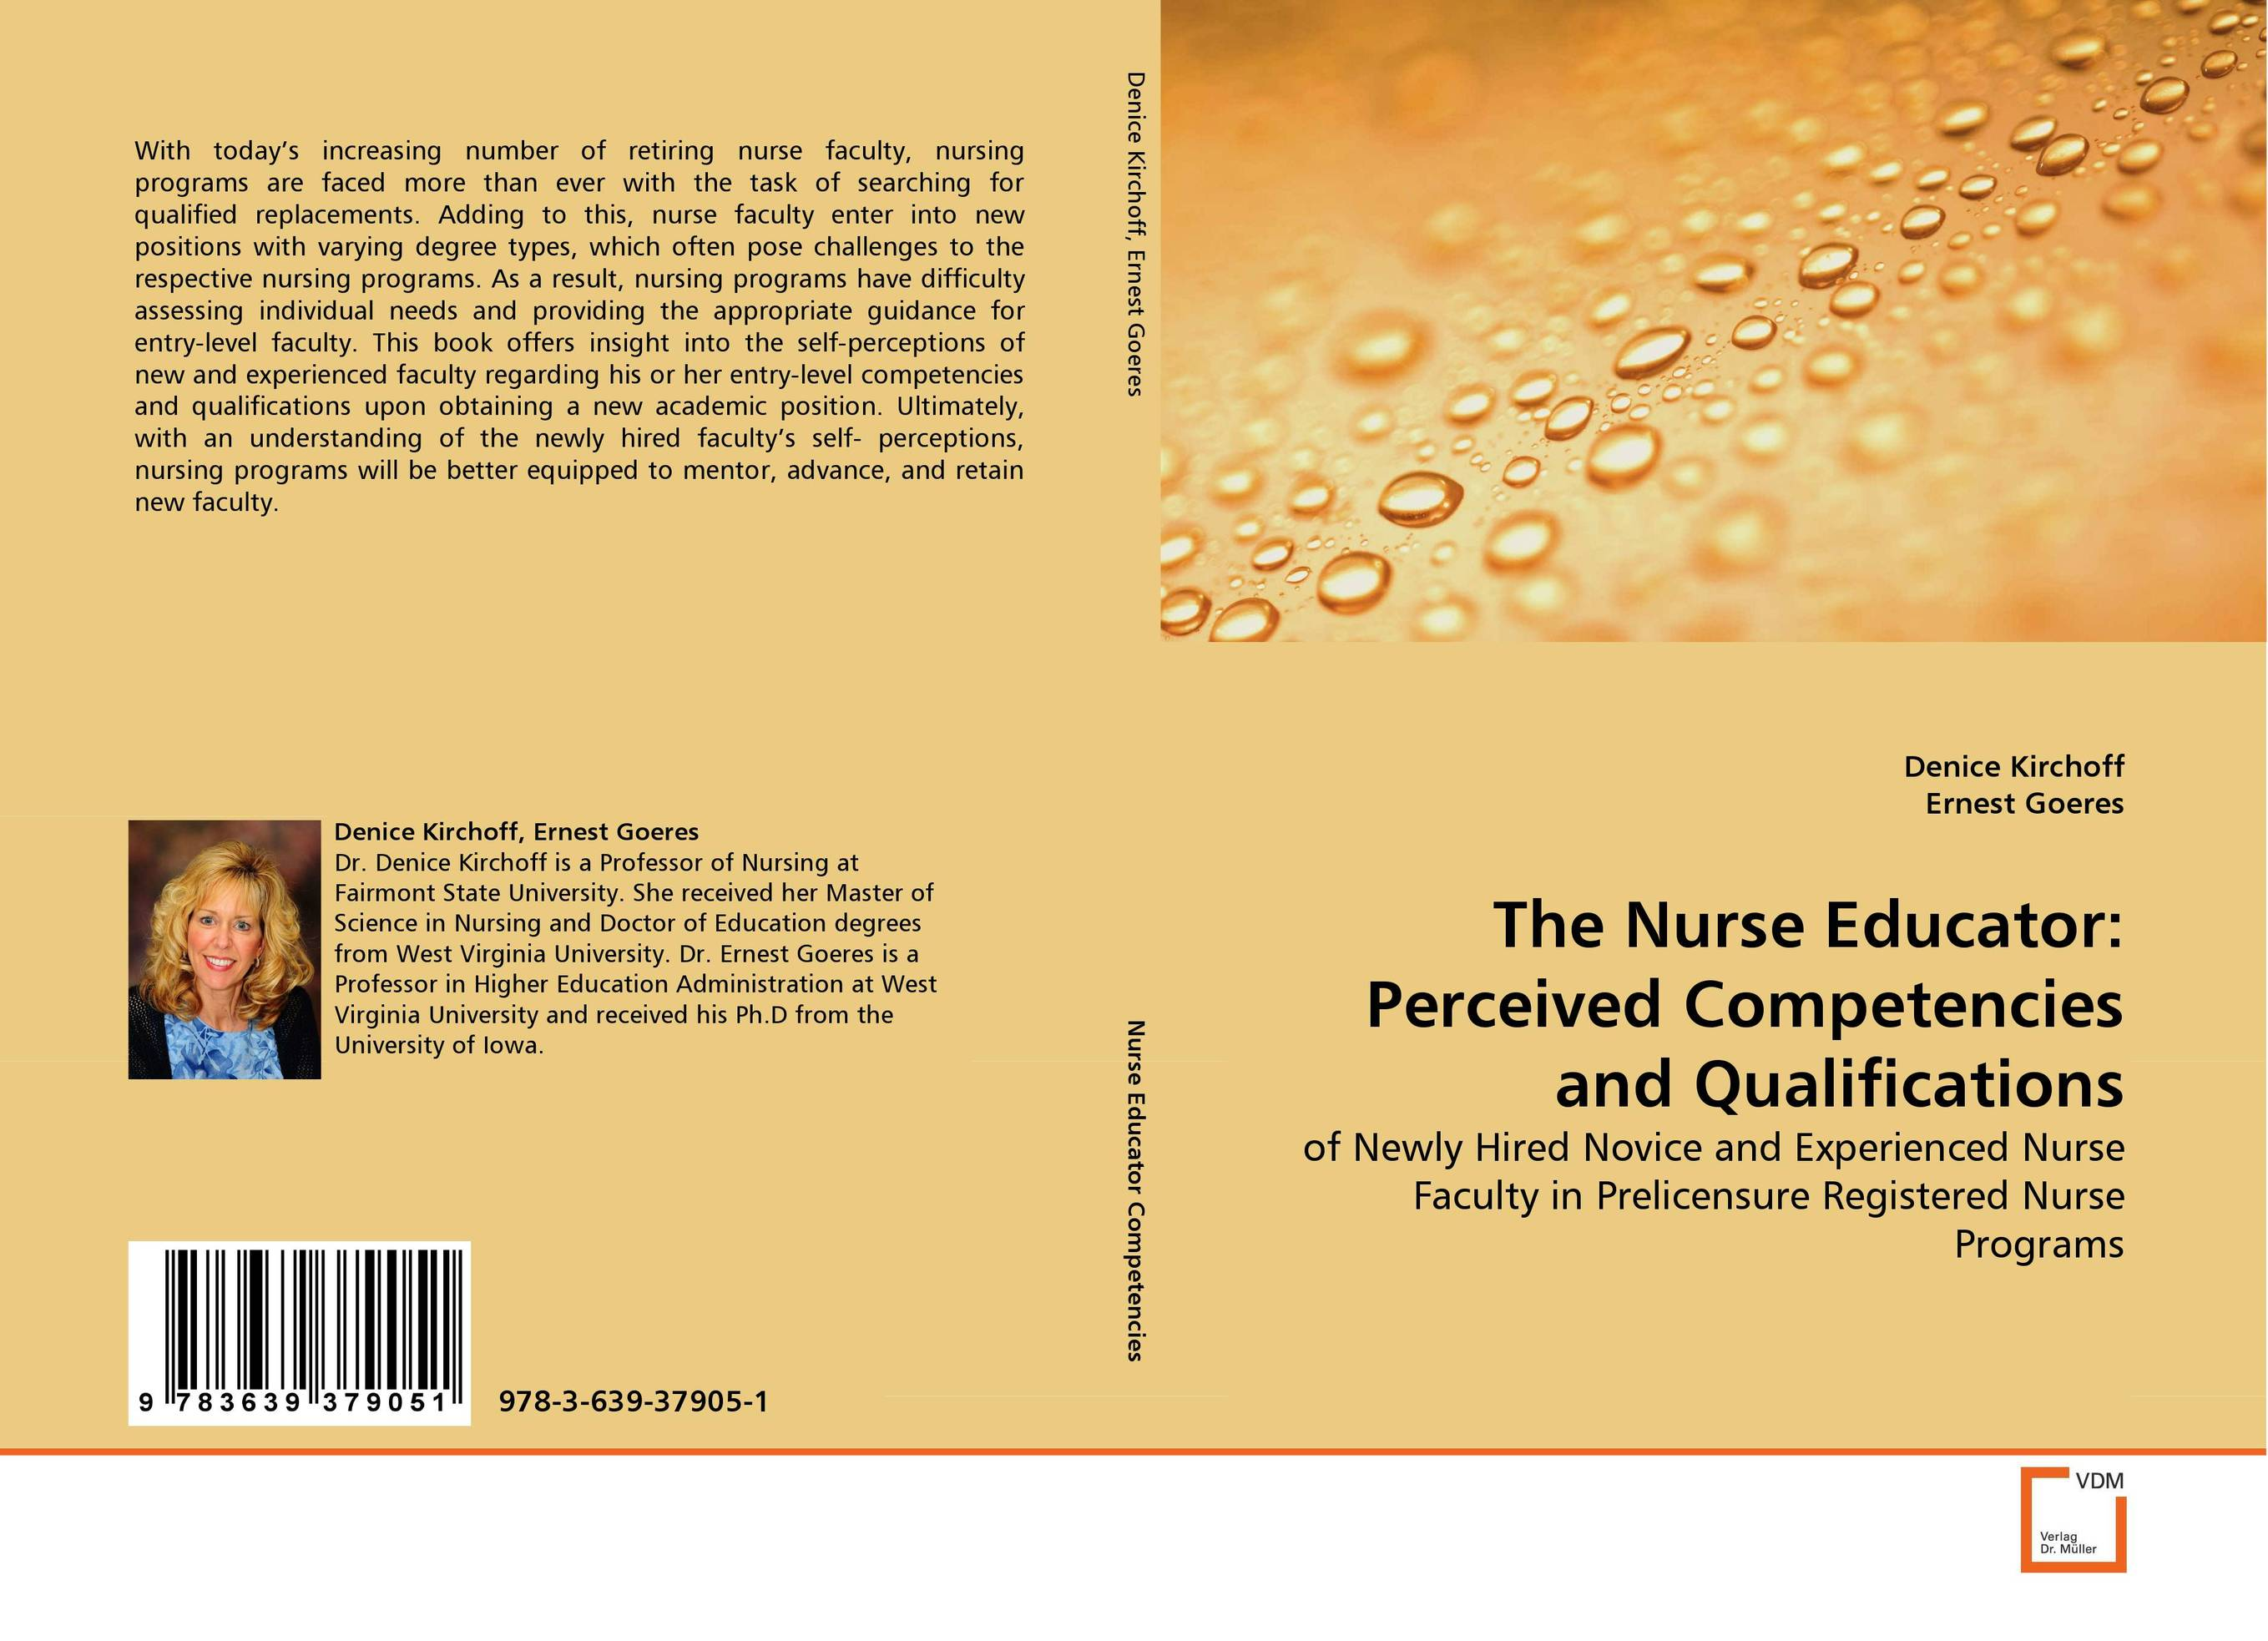 The Nurse Educator: Perceived Competencies and Qualifications